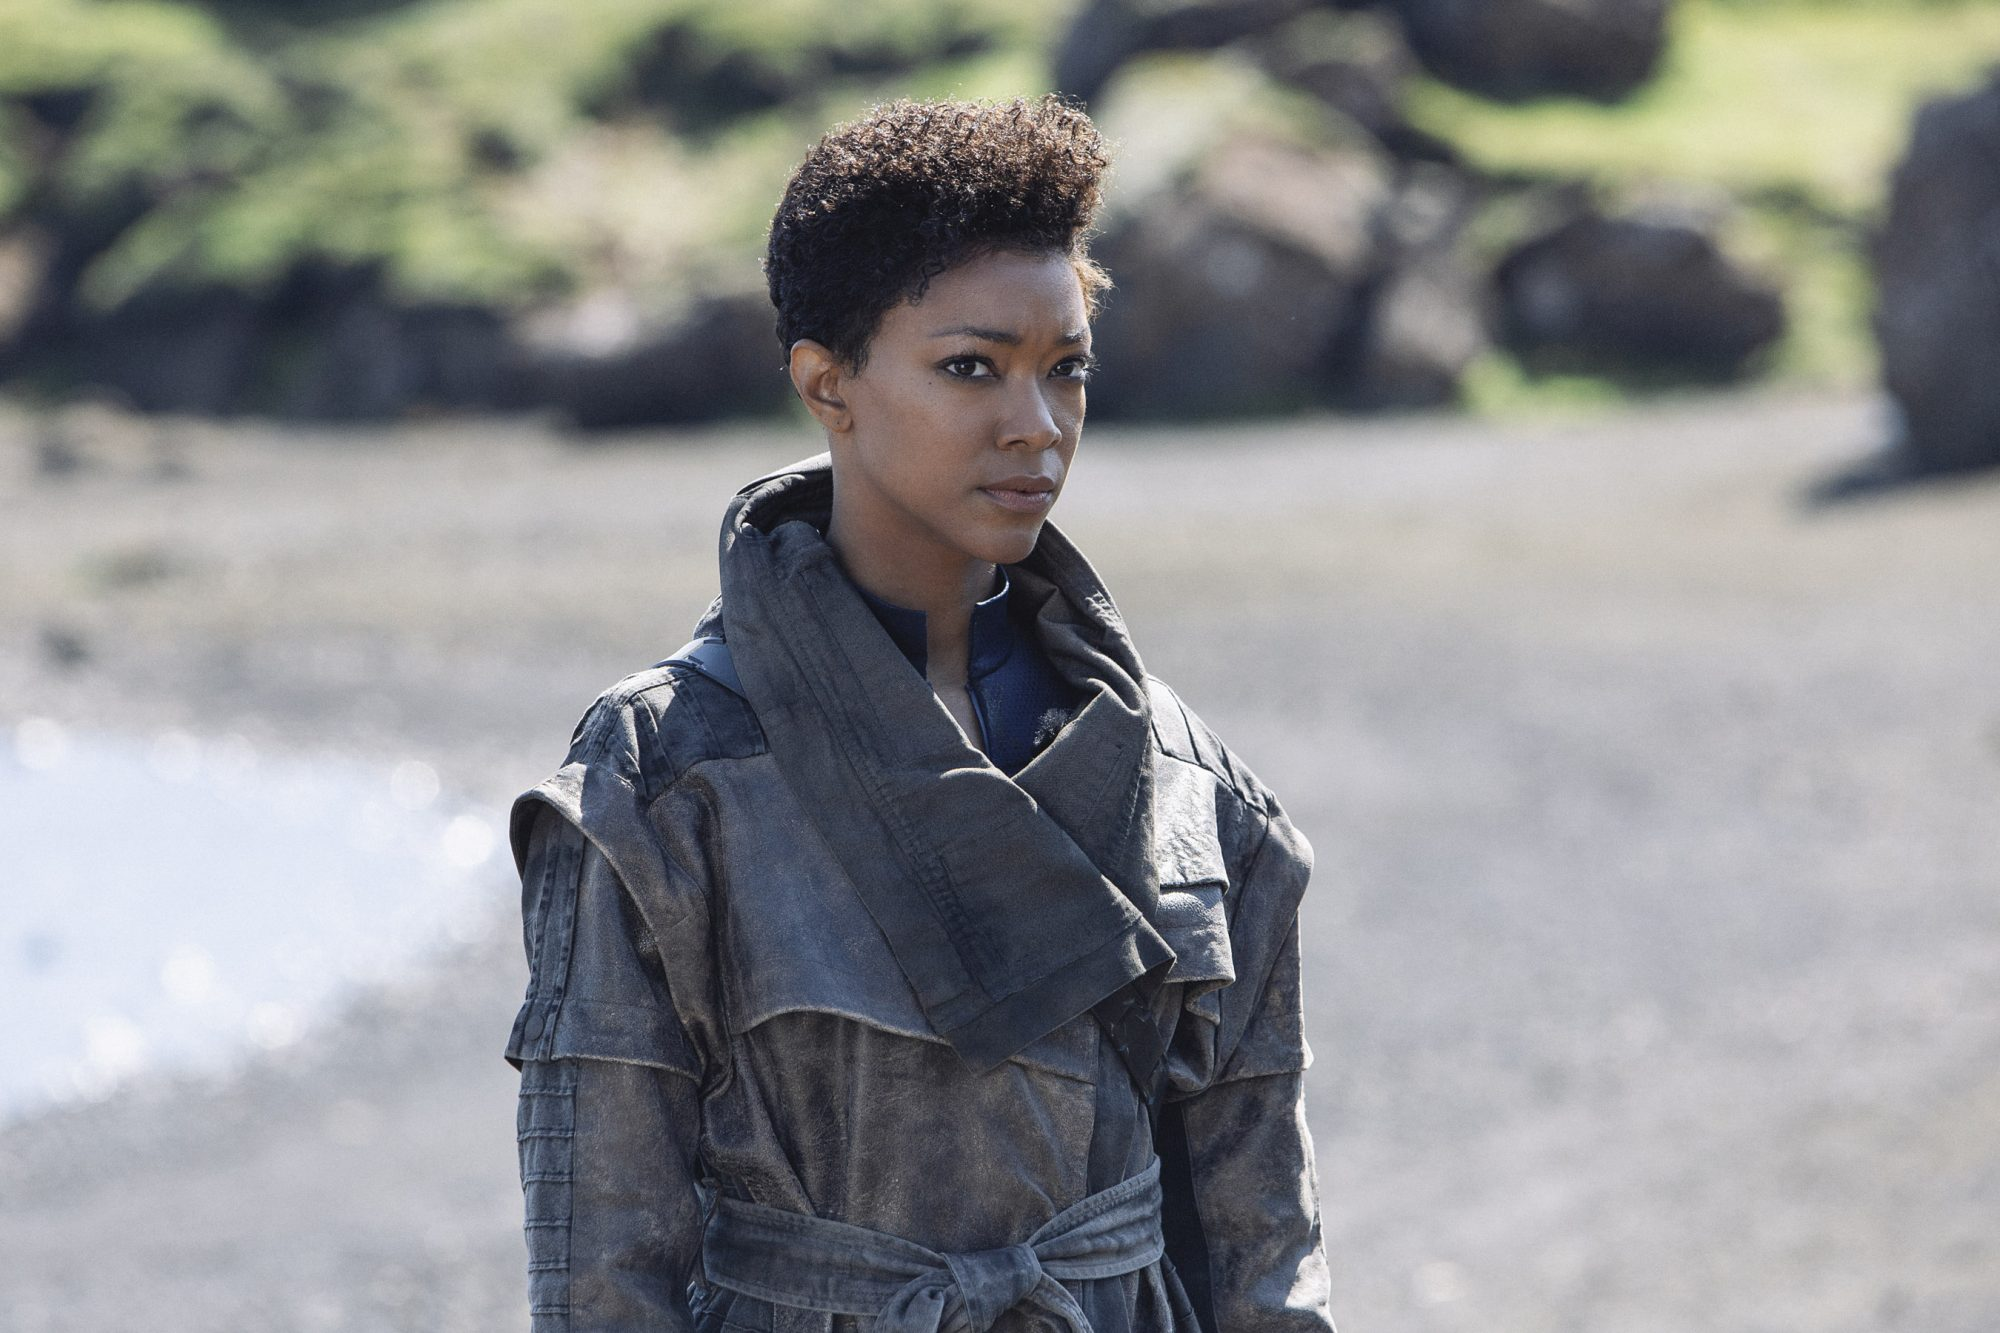 Pictured: Sonequa Martin-Green as Burnham of the CBS All Access series STAR TREK: DISCOVERY. Photo Cr: Lilja J--nsd--ttir/CBS © 2019 CBS Interactive. All Rights Reserved.